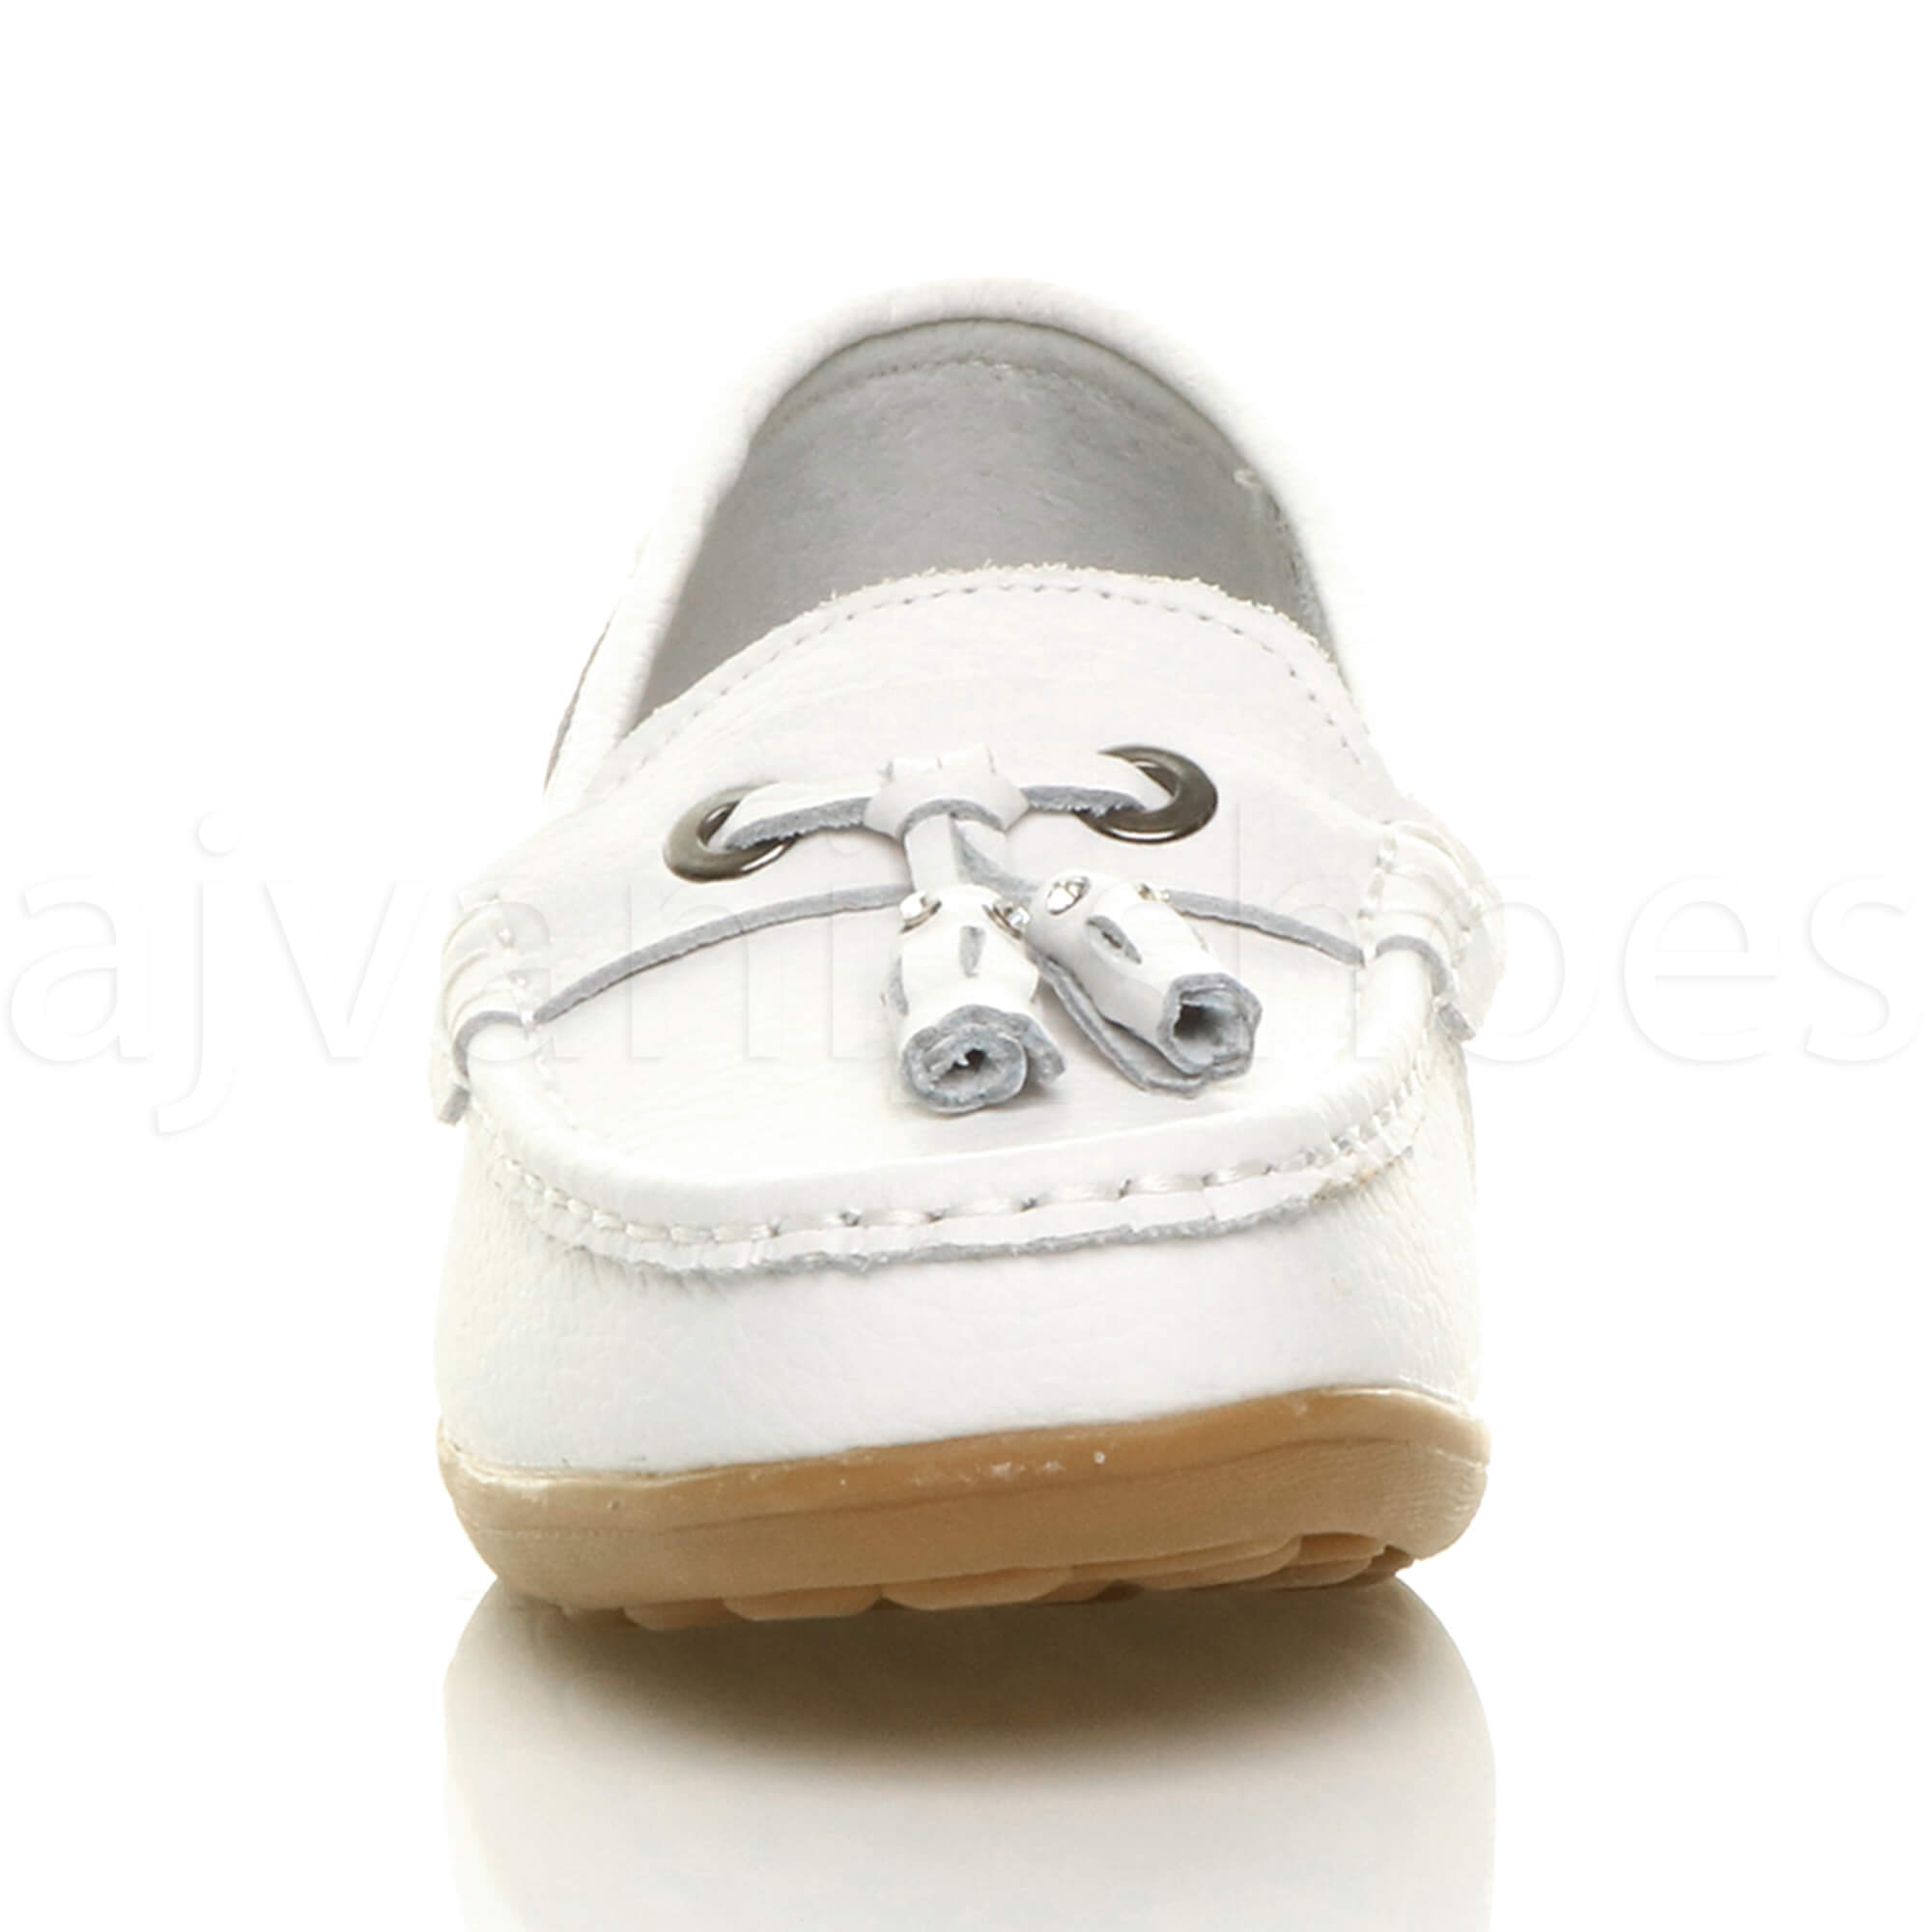 WOMENS-LADIES-LOW-HEEL-WEDGE-LEATHER-TASSEL-LOAFERS-COMFORT-MOCCASINS-SHOES-SIZE thumbnail 47